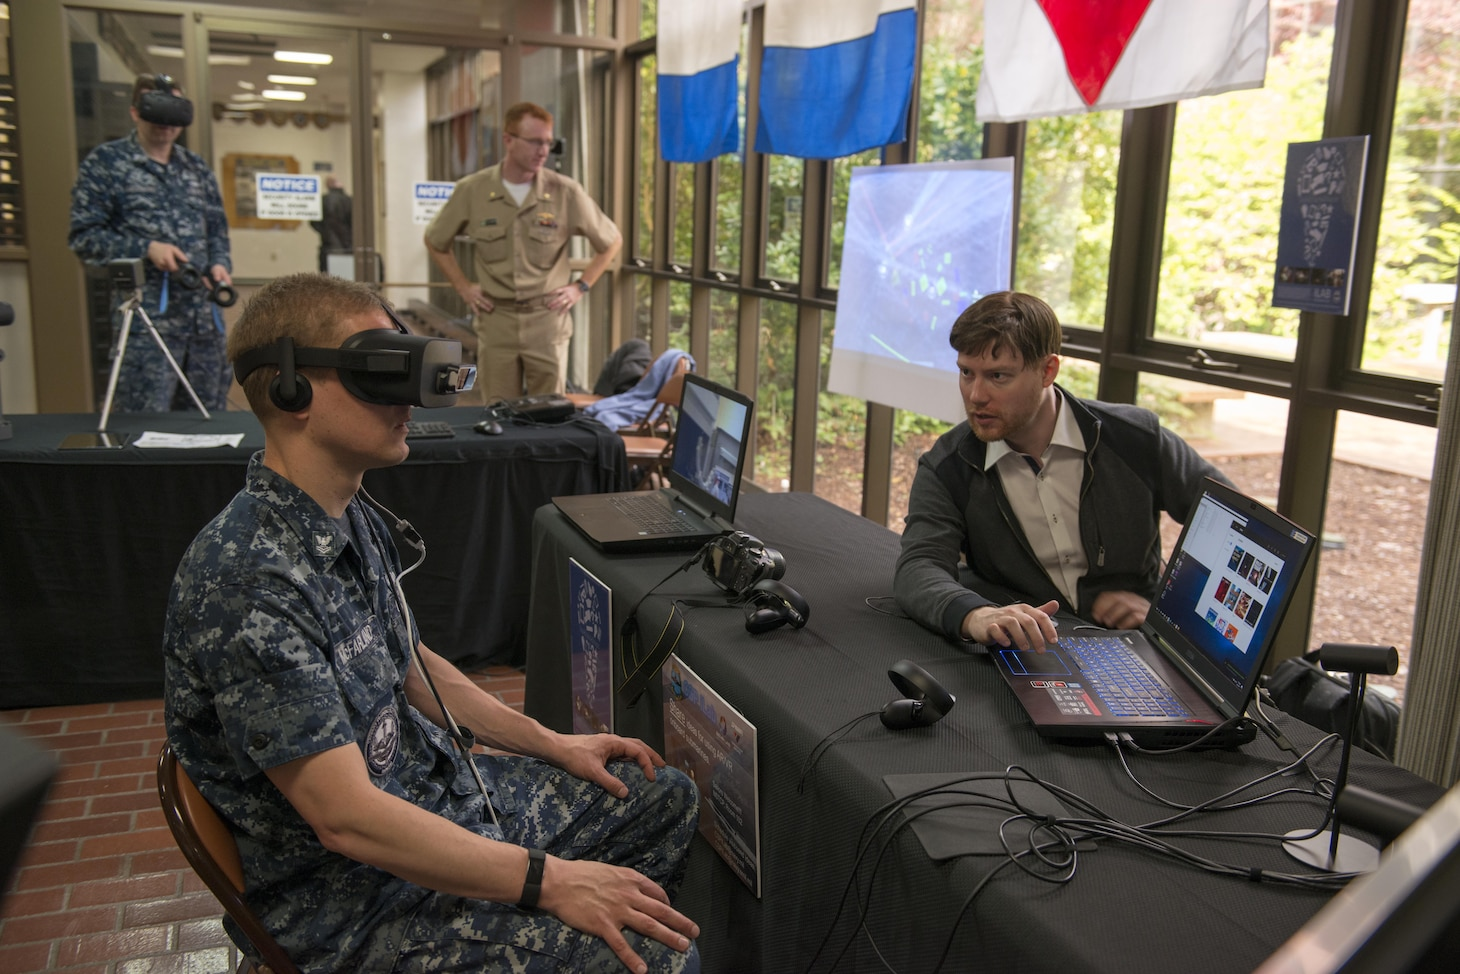 BANGOR, Wash. (April 27, 2017) Sonar Technician 2nd Class Andrew McFarland, assigned to Trident Training Facility (TTF) Bangor, tests the OceanLens, which uses an Oculus Rift virtual reality headset to create a 3D immersive environment for visualizing undersea topography, during the Innovation Lab (iLab) roadshow held at Trident Training Facility Bangor. The iLab, which is located at Naval Submarine Training Center Pacific, in Pearl Harbor, Hawaii, is an initiative launched to spur the rapid development of ideas and concepts to actionable use in submarine warfare. (U.S. Navy photo by Mass Communication Specialist 1st Class Amanda R. Gray/Released)